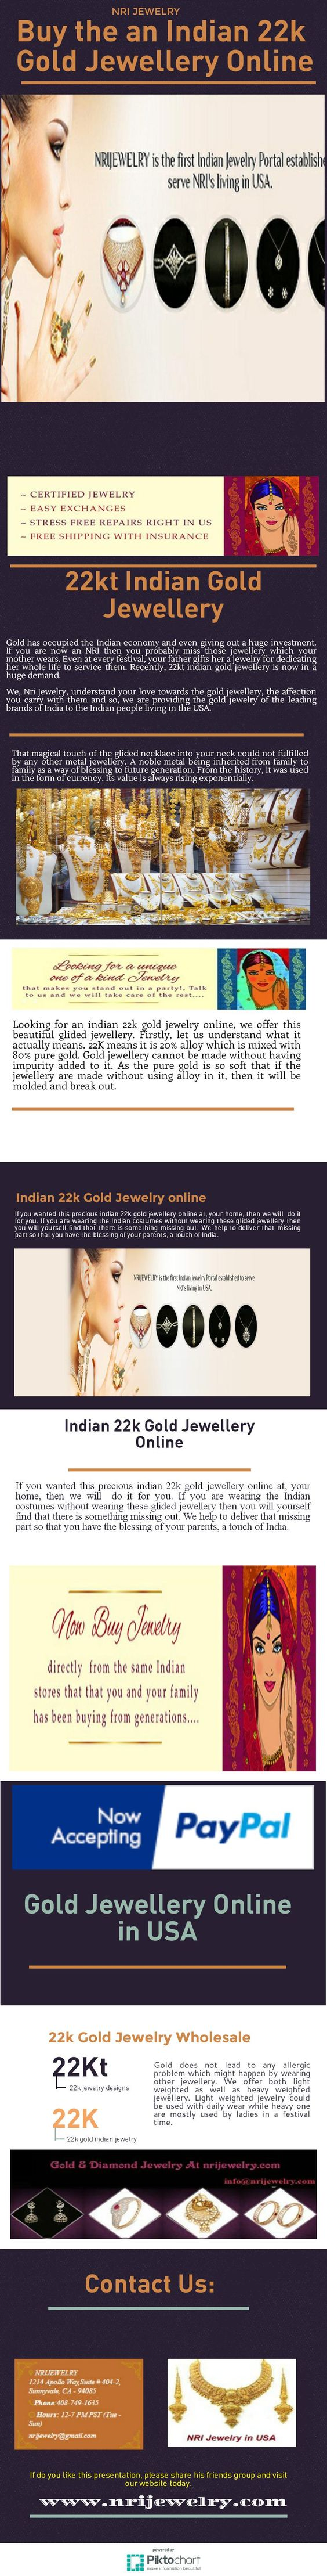 22Kt gold jewelry online 22kt Indian Gold Jewellery